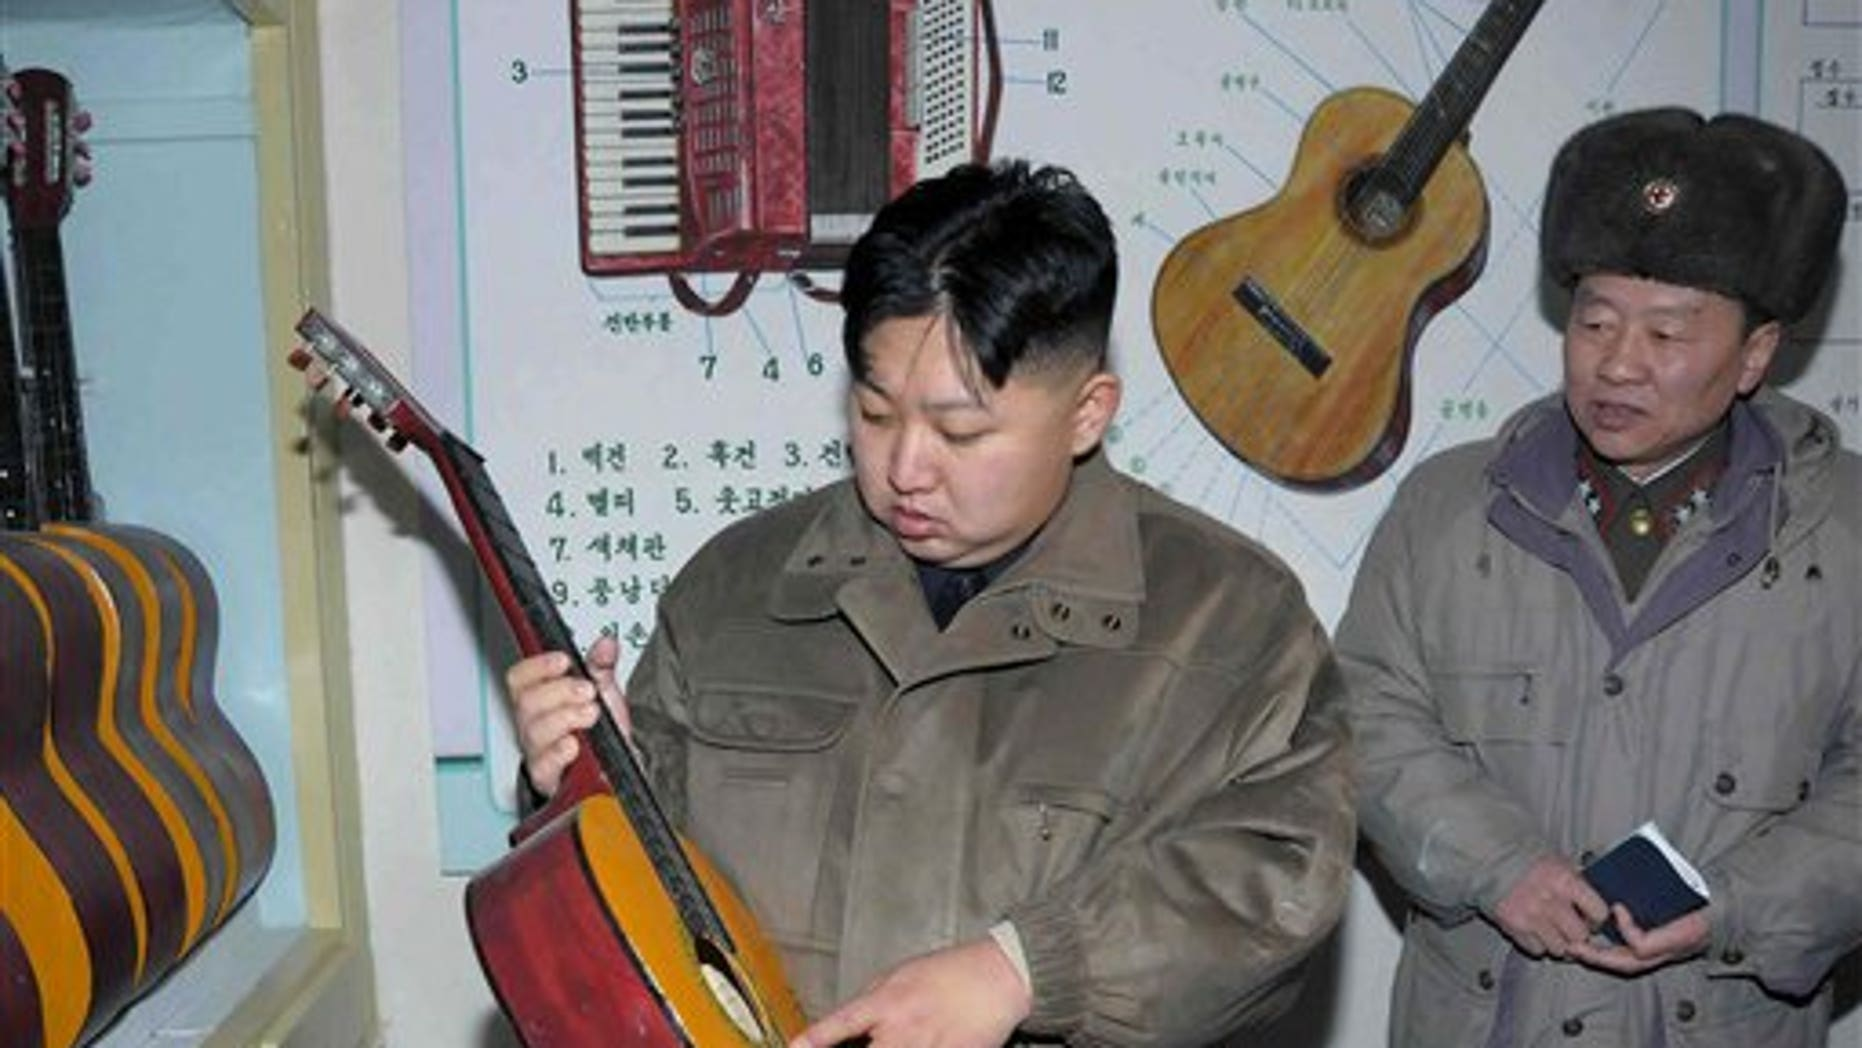 Jan. 19: In this undated photo released by the Korean Central News Agency and distributed in Tokyo by the Korea News Service, North Korean leader Kim Jong Un, center, looks at a guitar at an undisclosed location in North Korea.